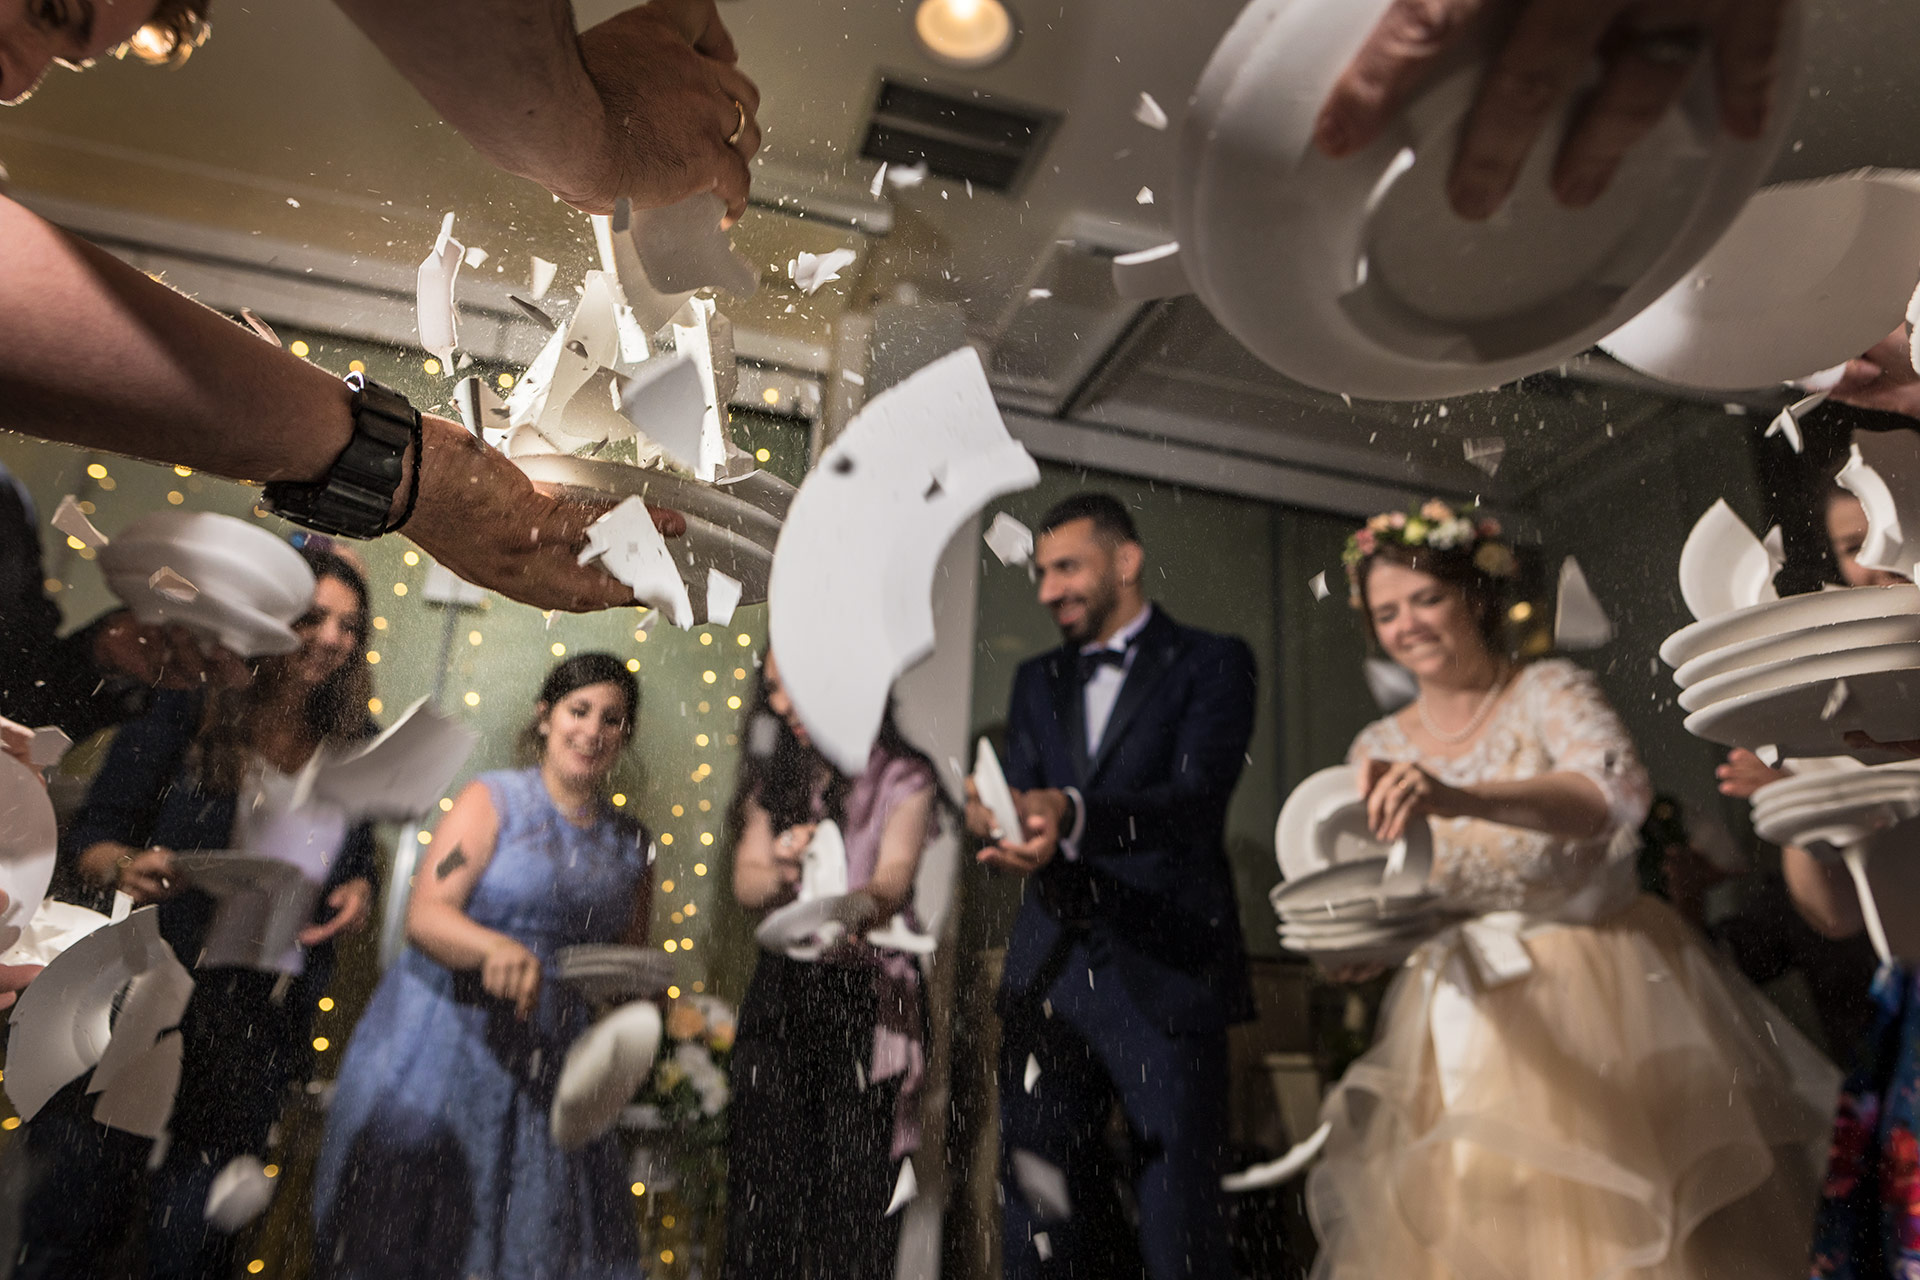 Fleeting memories are bottled in a wedding photograph of plate smashing.